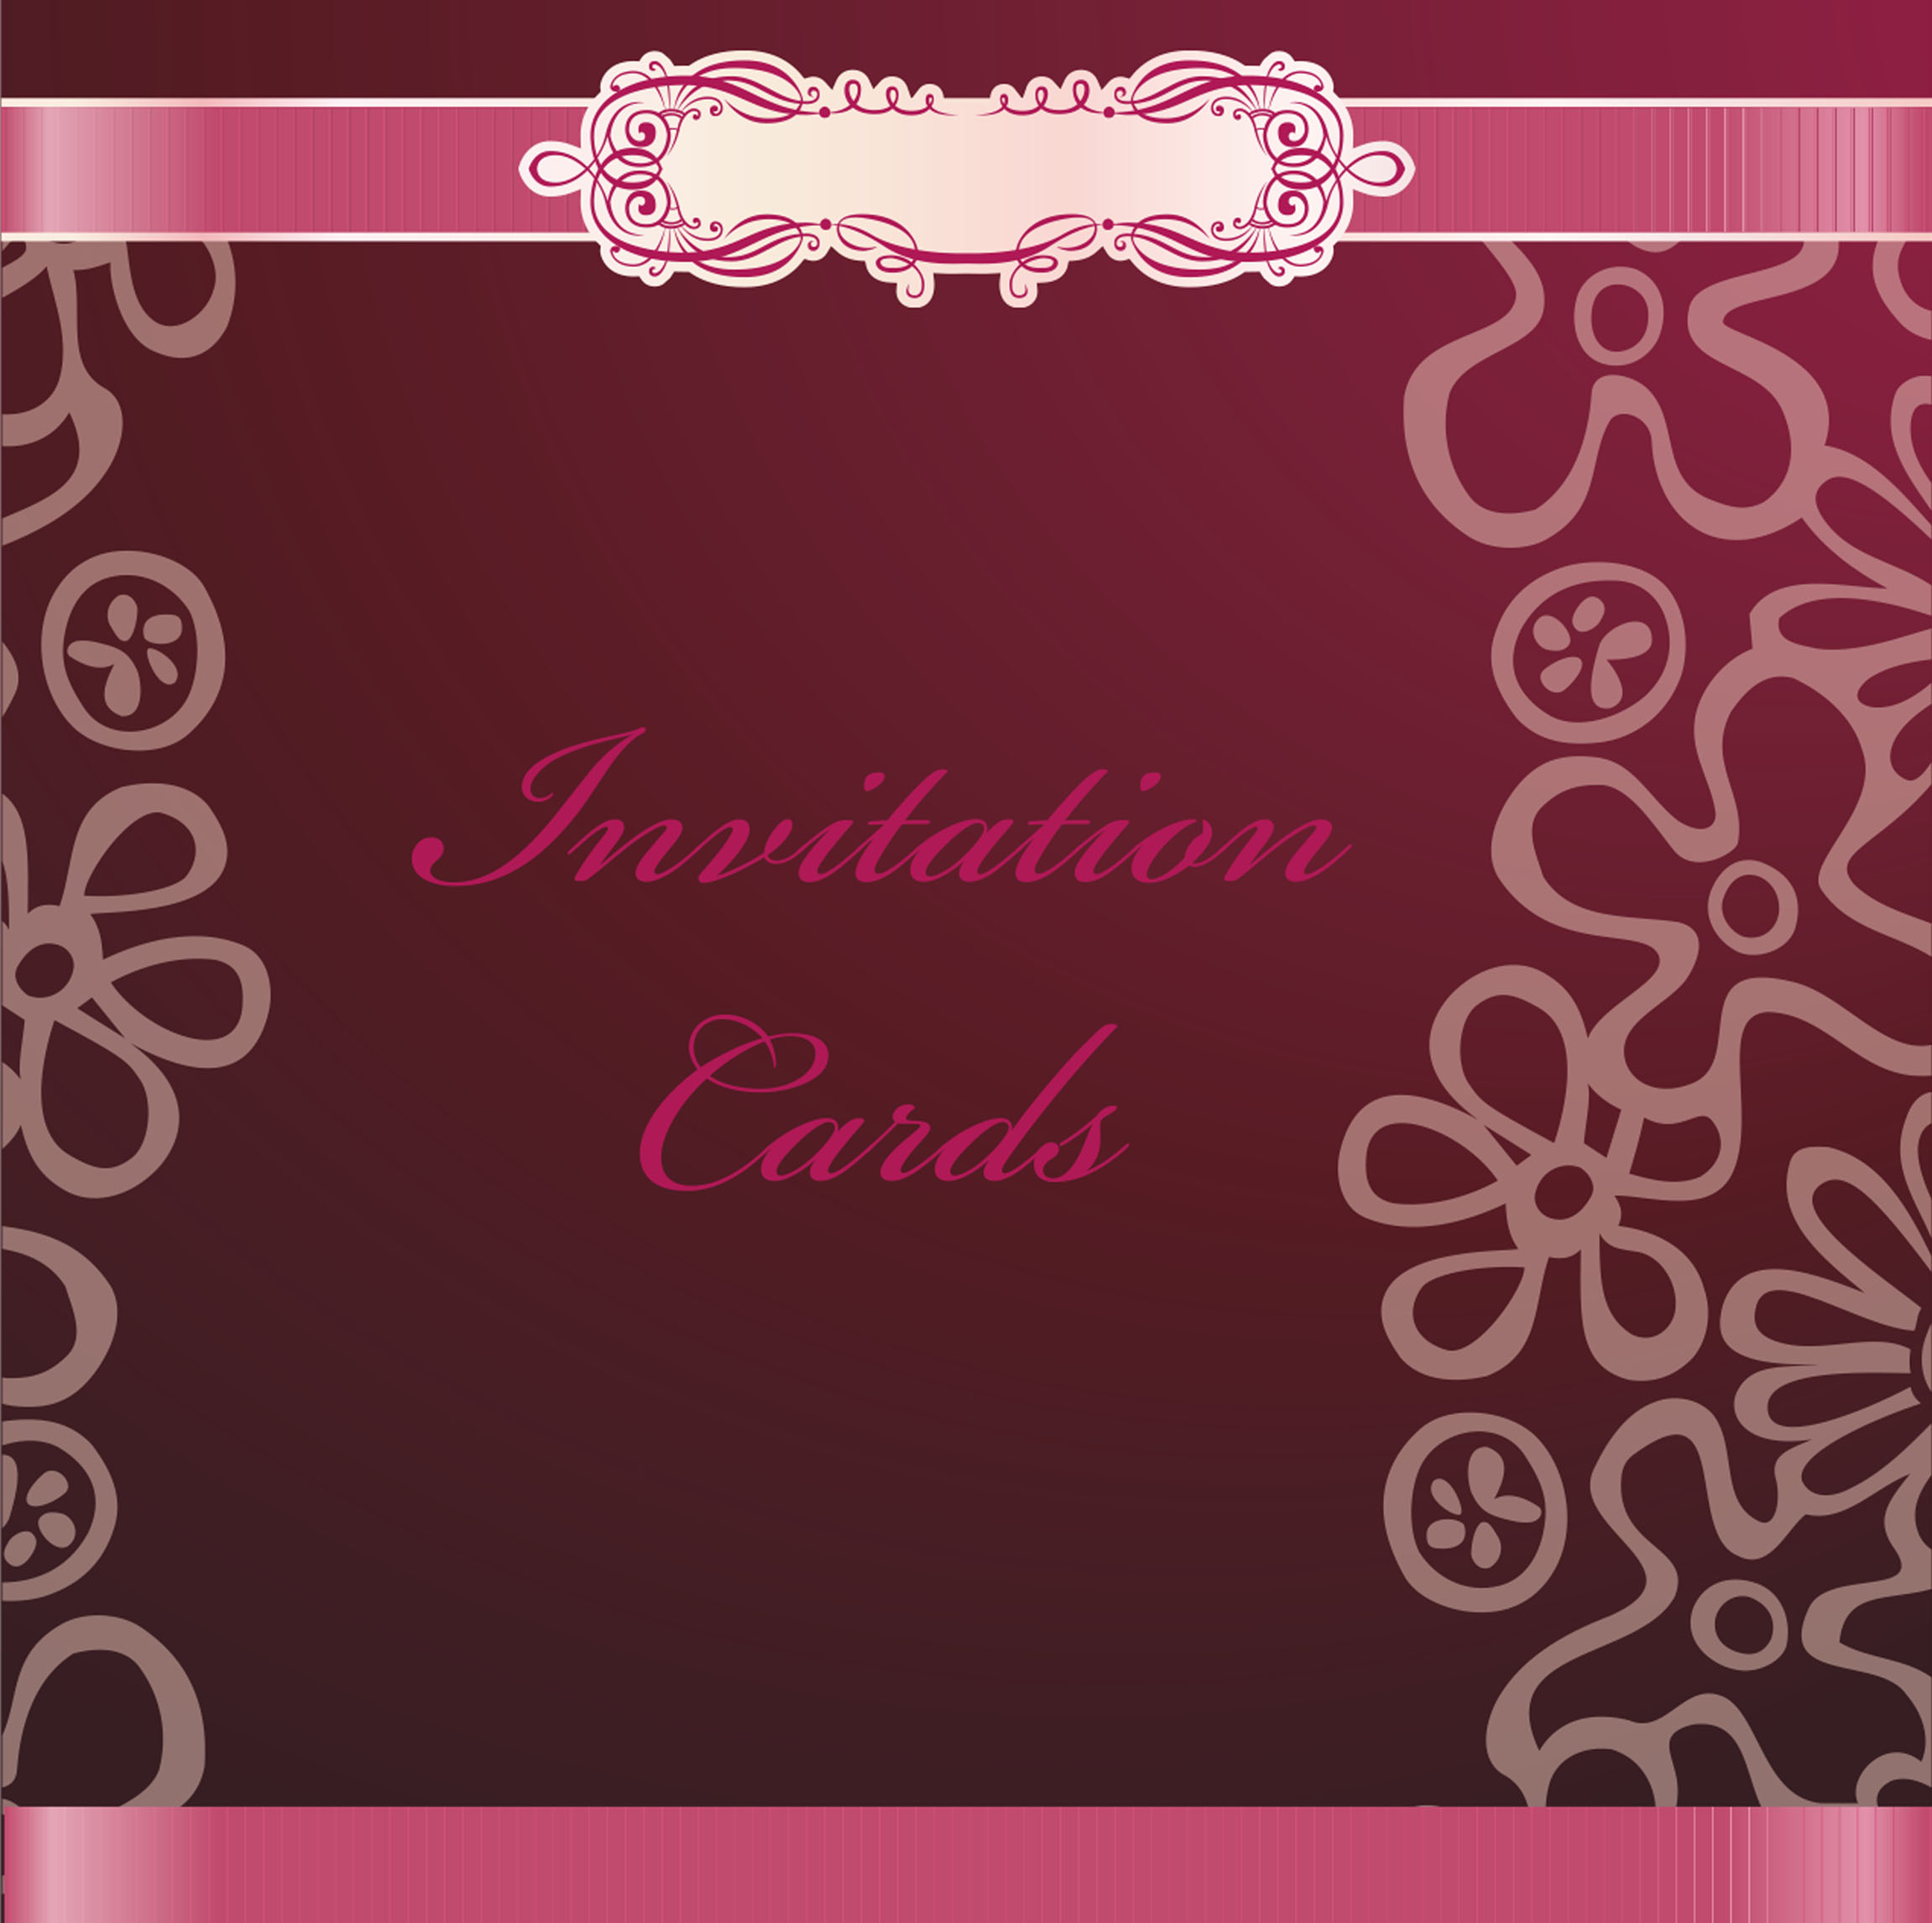 Continental Red Simple English Wordart Wedding Invitation Background ...